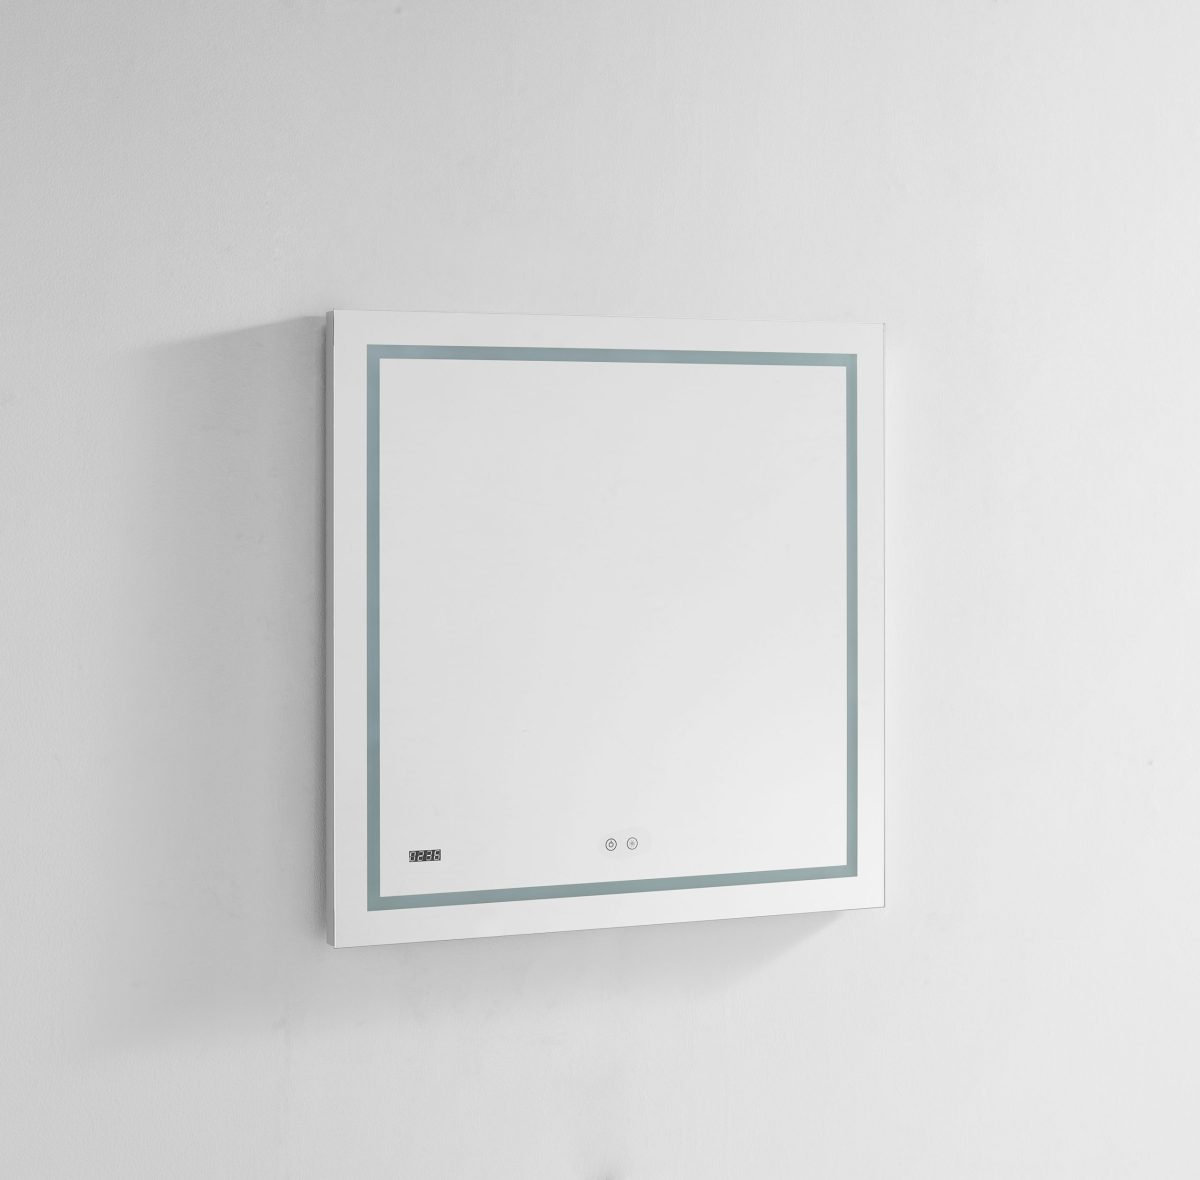 AQUADOM Daytona 30 inches x 36 inches Wall Mounted LED Lighted Silver Mirror for Bathroom